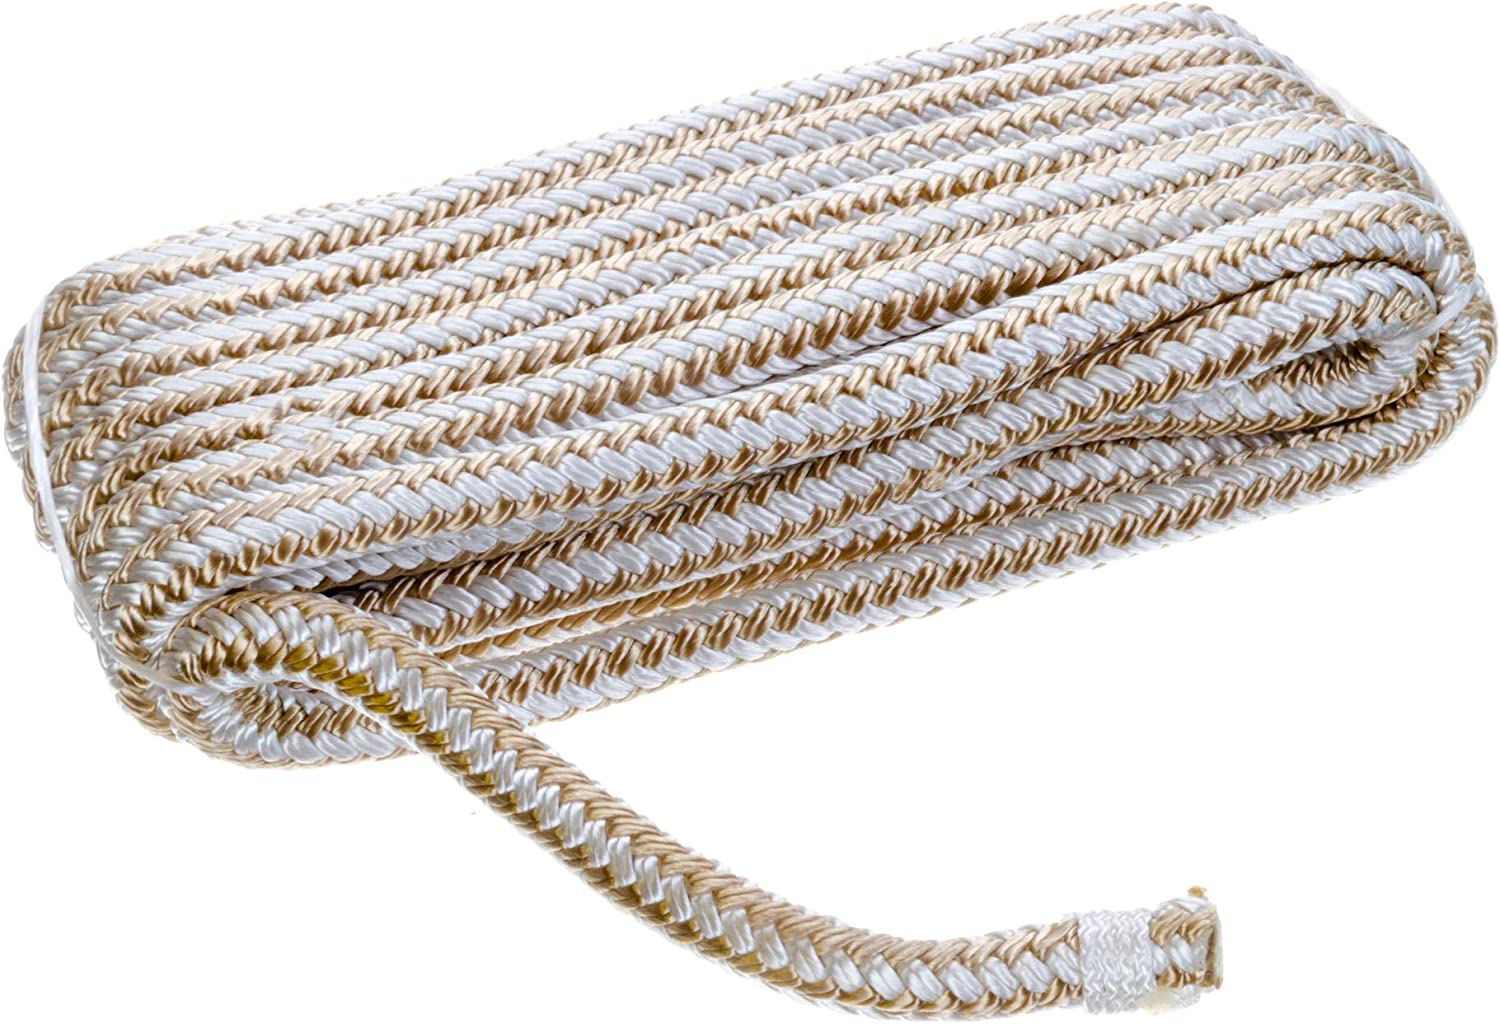 SEACHOICE Double-Braid Nylon Dock Line 3//8 x 15 40011 Gold//White